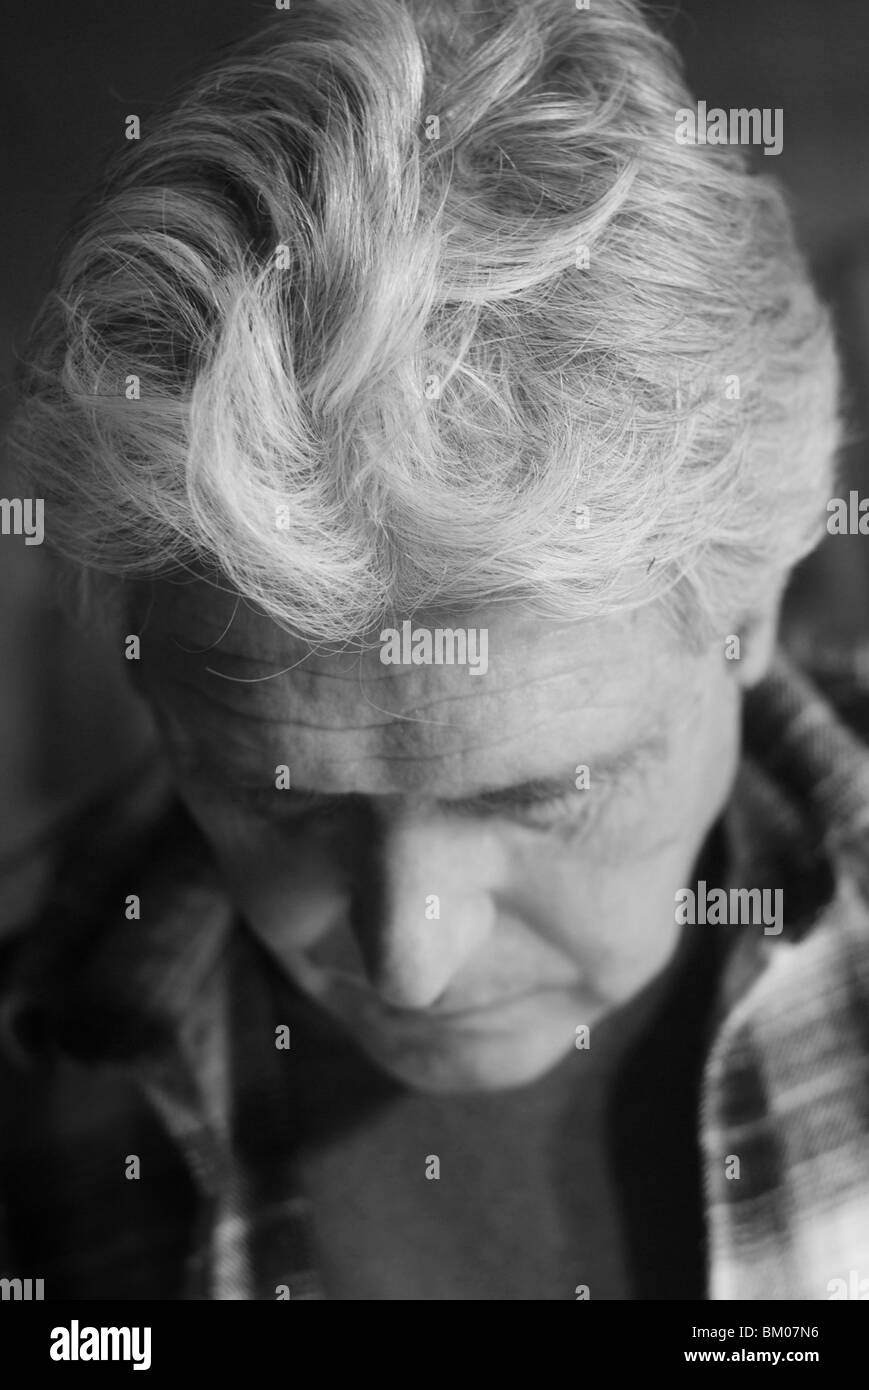 a pensive senior man concentrates while working, a portrait in black and white, suburban albuquerque, new mexico, - Stock Image